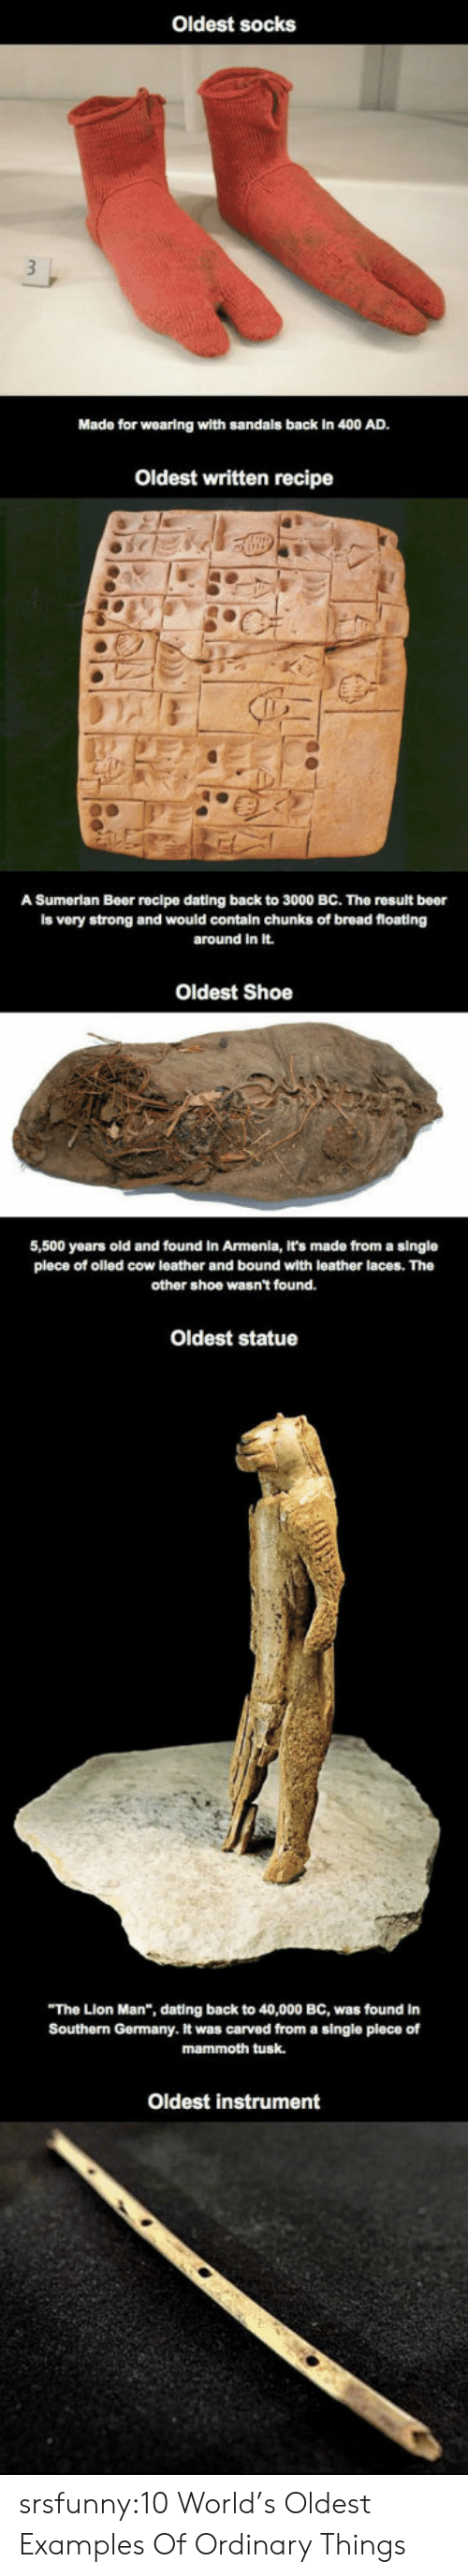 """Beer, Dating, and Tumblr: Oldest socks  Made for wearing wlth sandals back in 400 AD.  Oldest written recipe  A Sumerian Beer recipe dating back to 3000 BC. The rosult beer  is very strong and would contain chunks of bread floating  around in It.  Oldest Shoe  5,500 years old and found in Armenia, It's made from a single  plece of olled cow leather and bound with leather laces. The  other shoe wasn't found.  Oldest statue  The Lion Man"""", dating back to 40,000 BC, was found in  Southern Germany. It was carved from a single plece of  mammoth tusk.  Oldest instrument srsfunny:10 World's Oldest Examples Of Ordinary Things"""